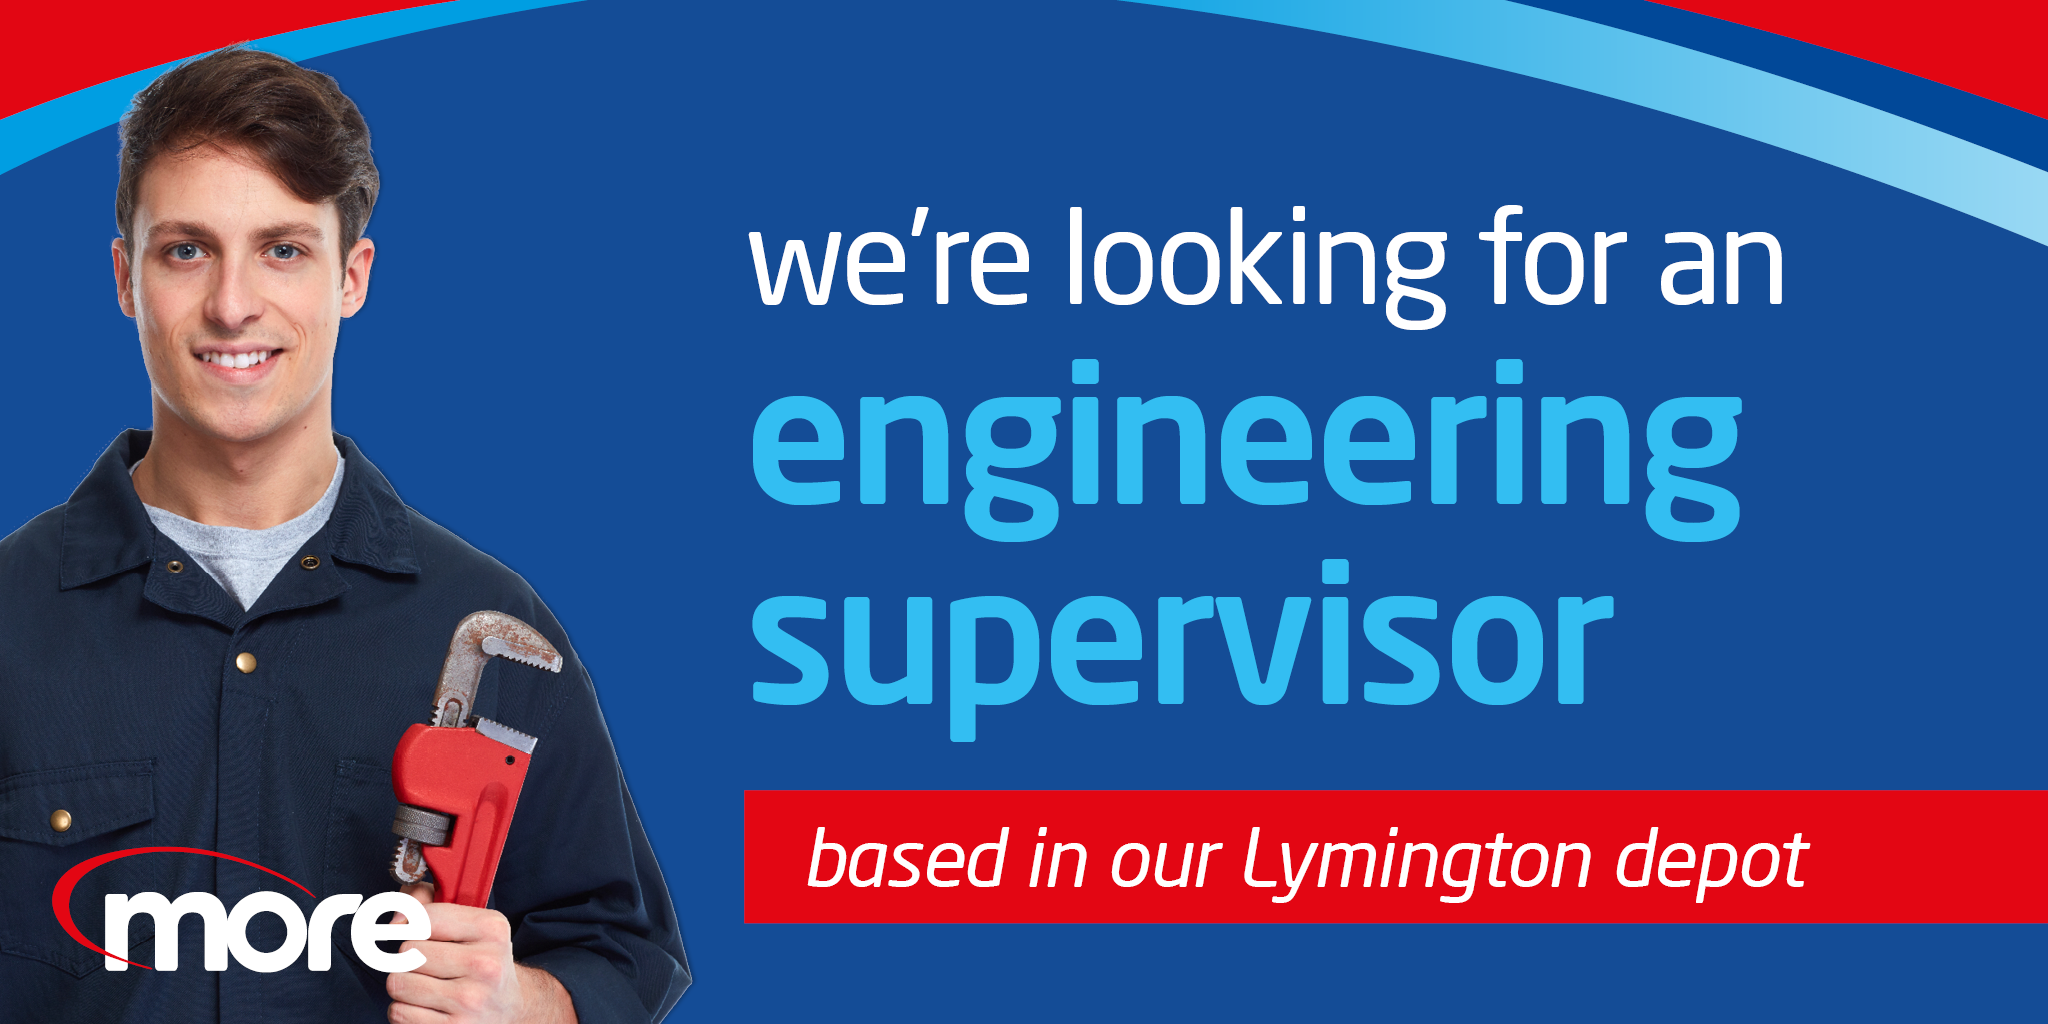 we're looking for an engineering supervisor based in our lymington depot